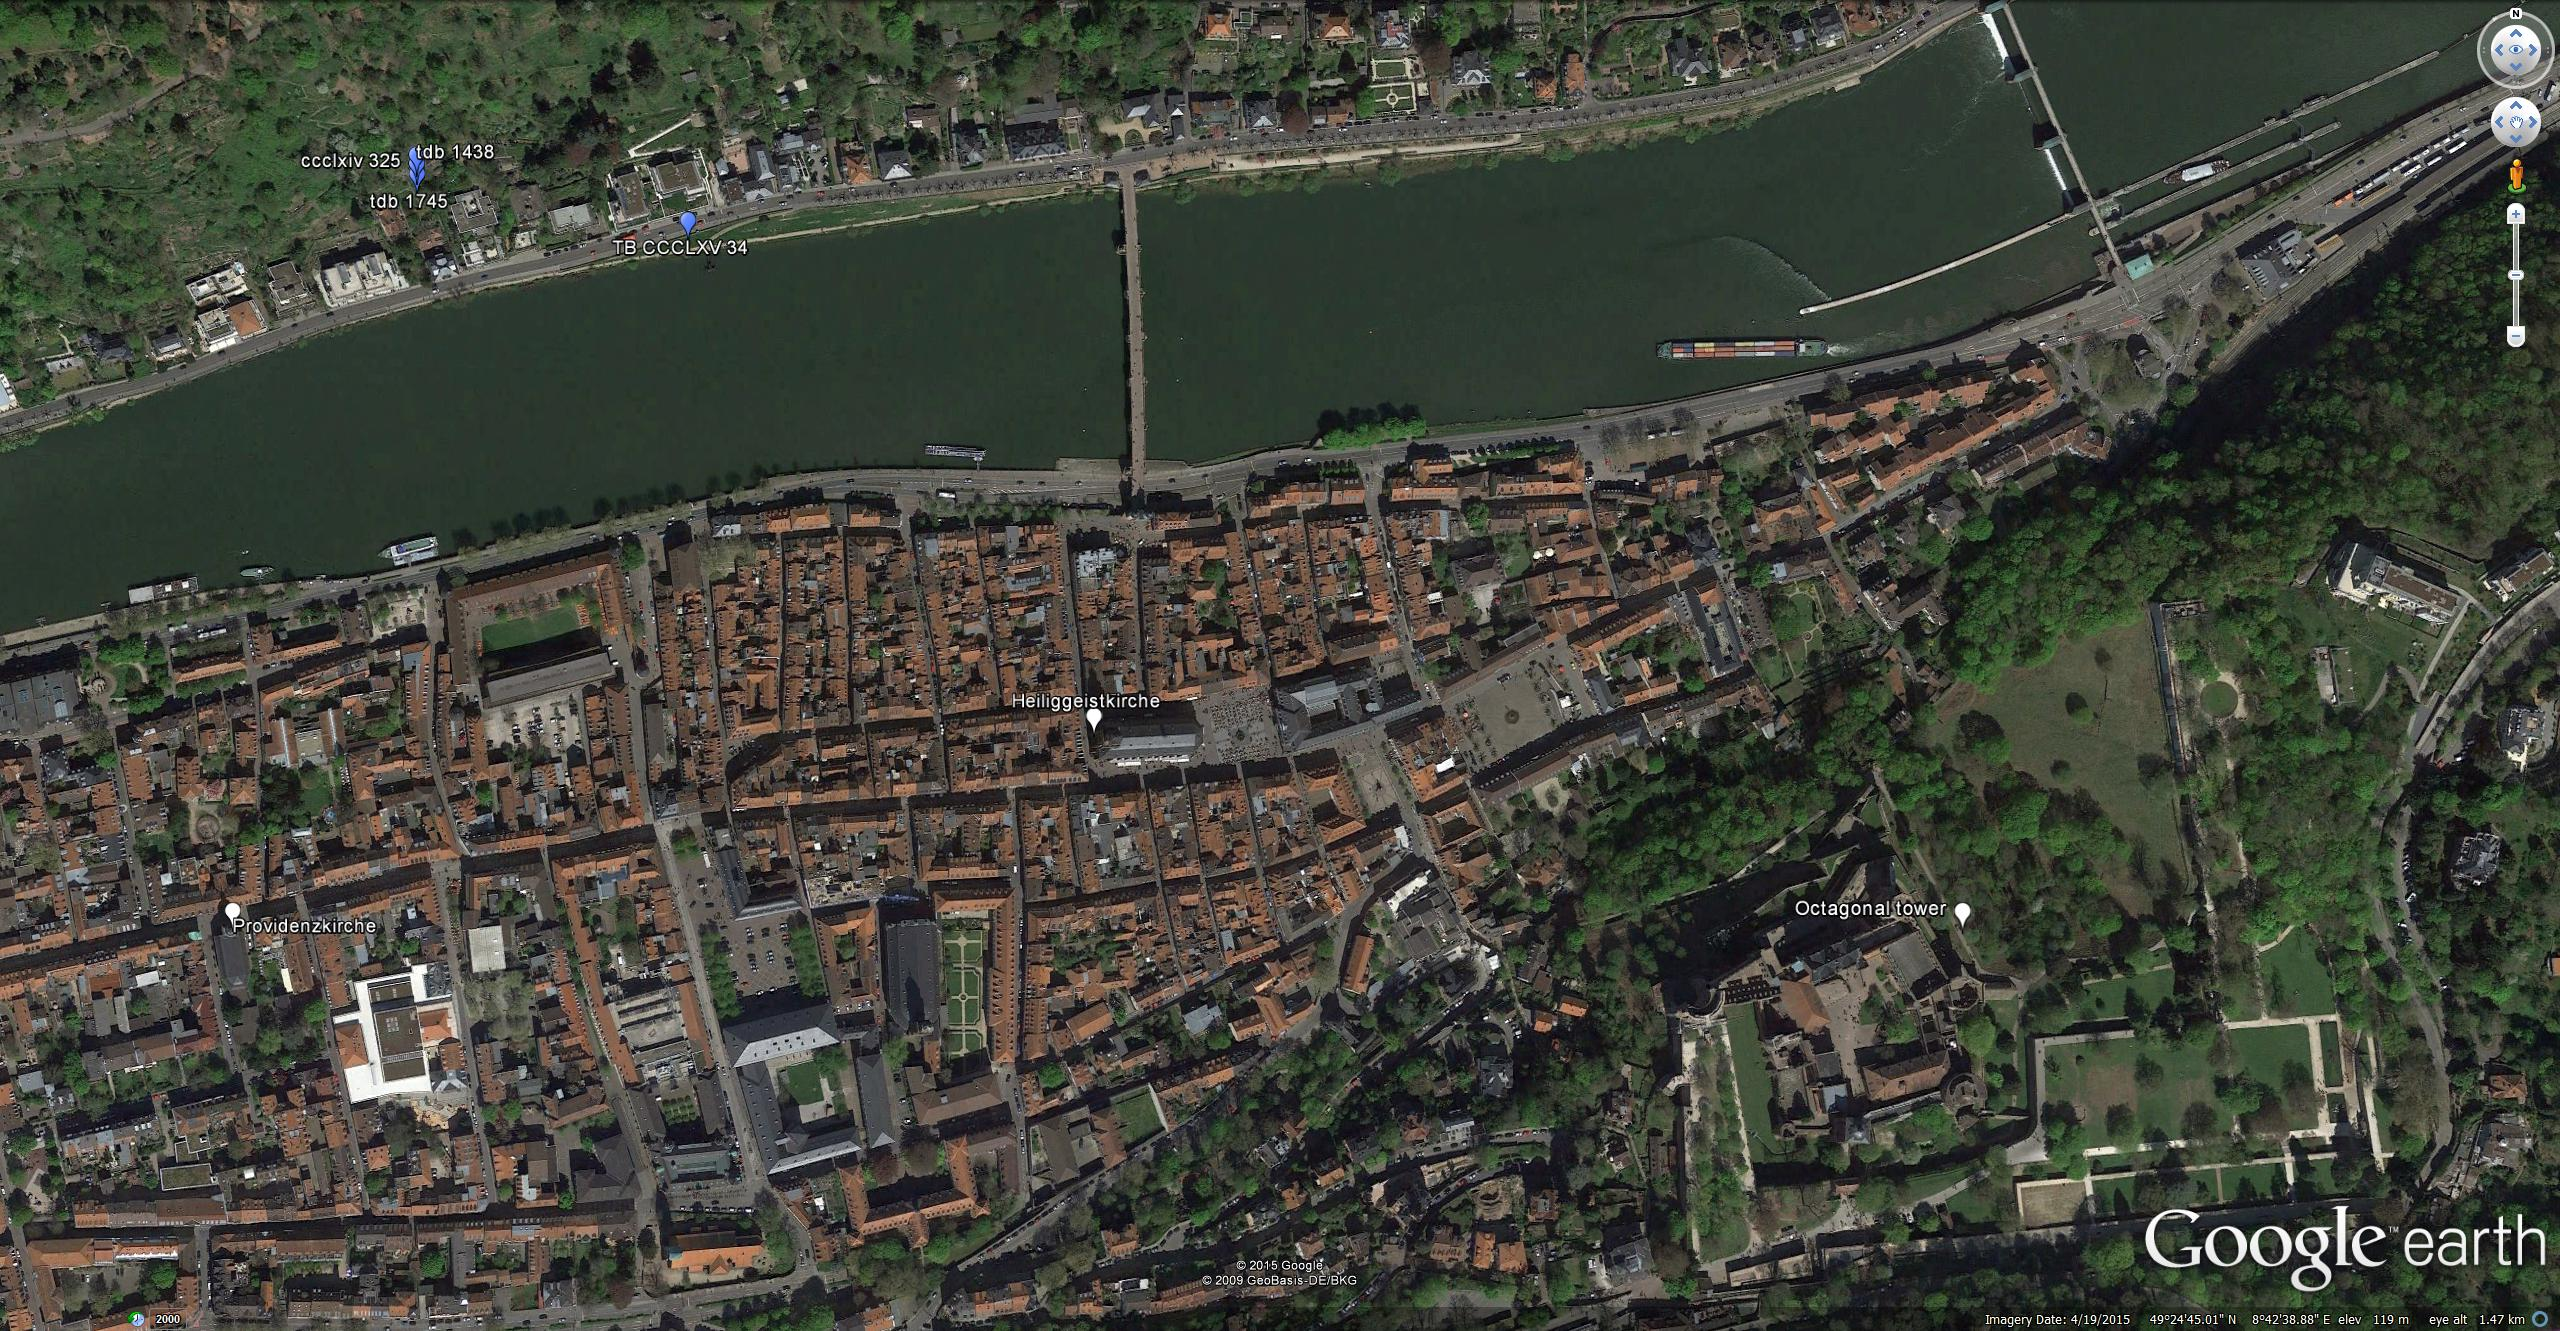 Google Earth: Heidelberg Aerial View Showing viewpoint of three on-the-spot sketches, plus that of the 1841-2 watercolour. The identification of these subjects as Heidelberg has proved less than straightforward, but I feel convinced that Turner's new viewpoint is a little further downstream, and slightly higher up, since the relation between the castle and church is consistent with a downstream viewpoint and the lantern of the spire of the Heiliggeistkirche is on a level with the top of the castle, suggesting a level forty or fifty feet above the river. This exact viewpoint is no longer accessible, being behind the houses on the Neuenheim Landstrasse, but it is not so very much higher than the road, and nowhere as high as the famous strolling route the Philosophenweg, which cuts across the slope here high above the river.  This image is best viewed at full-size. Click on the image to enlarge and use your browser's 'back' button to return to this page.